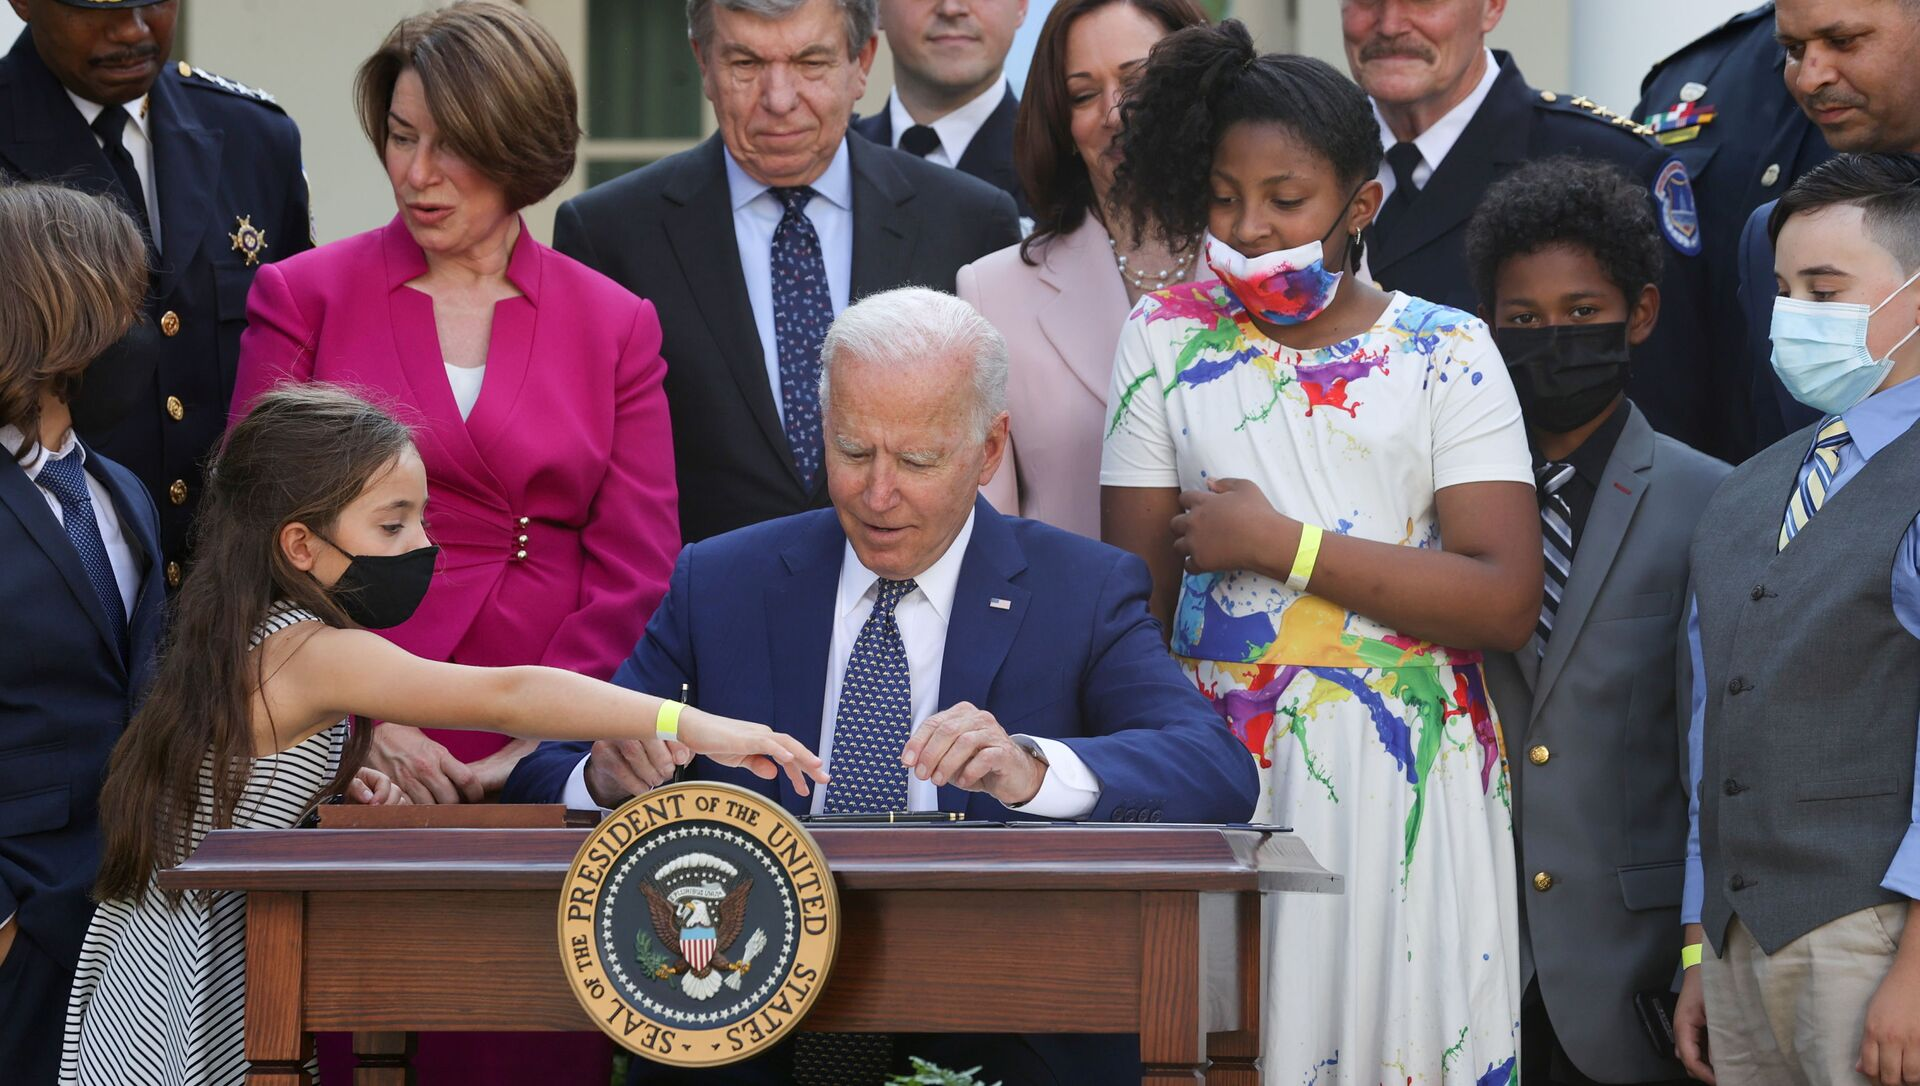 U.S. President Joe Biden is surrounded by members of Congress and family members of fallen police officers as he signs into law an act to award four Congressional Gold Medals to the United States Capitol Police, Washington Metro Police and those who protected the U.S. Capitol on January 6, at the White House in Washington, U.S. August 5, 2021. - Sputnik International, 1920, 05.08.2021